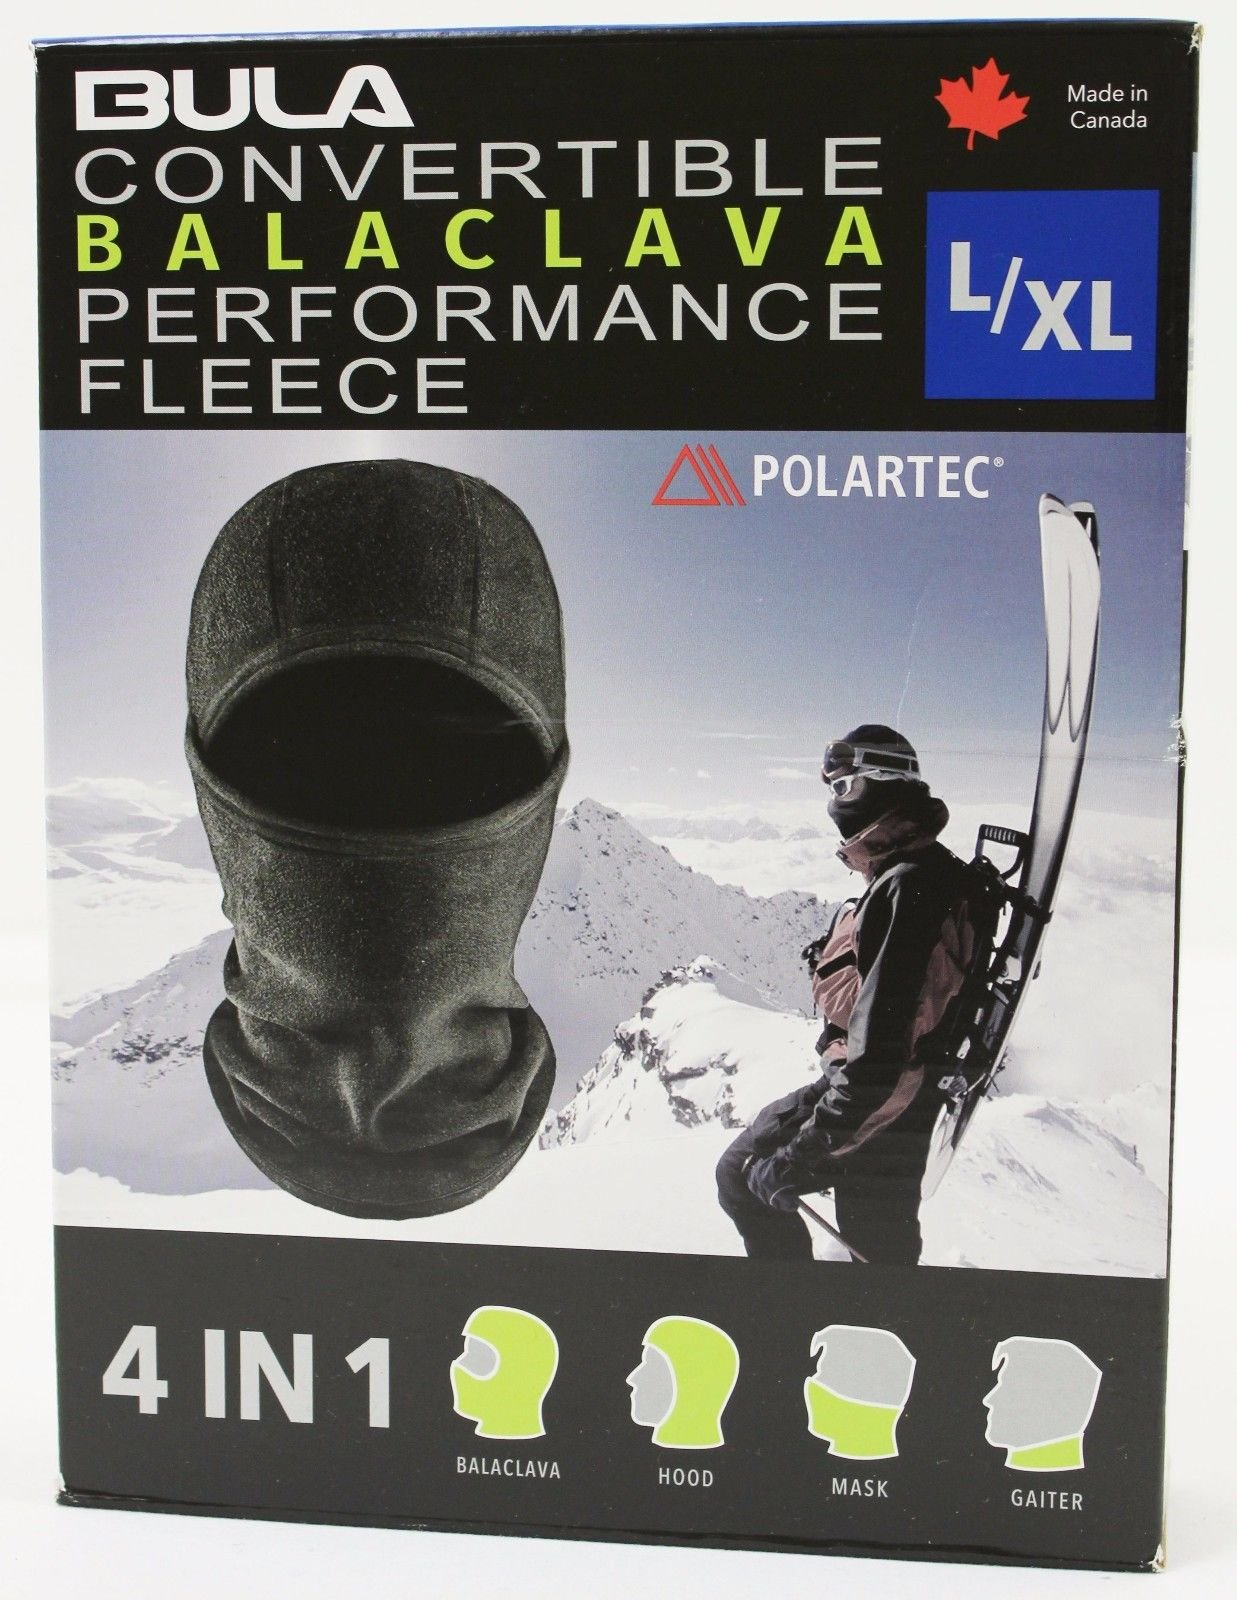 BULA Convertible Balaclava Performance Fleece